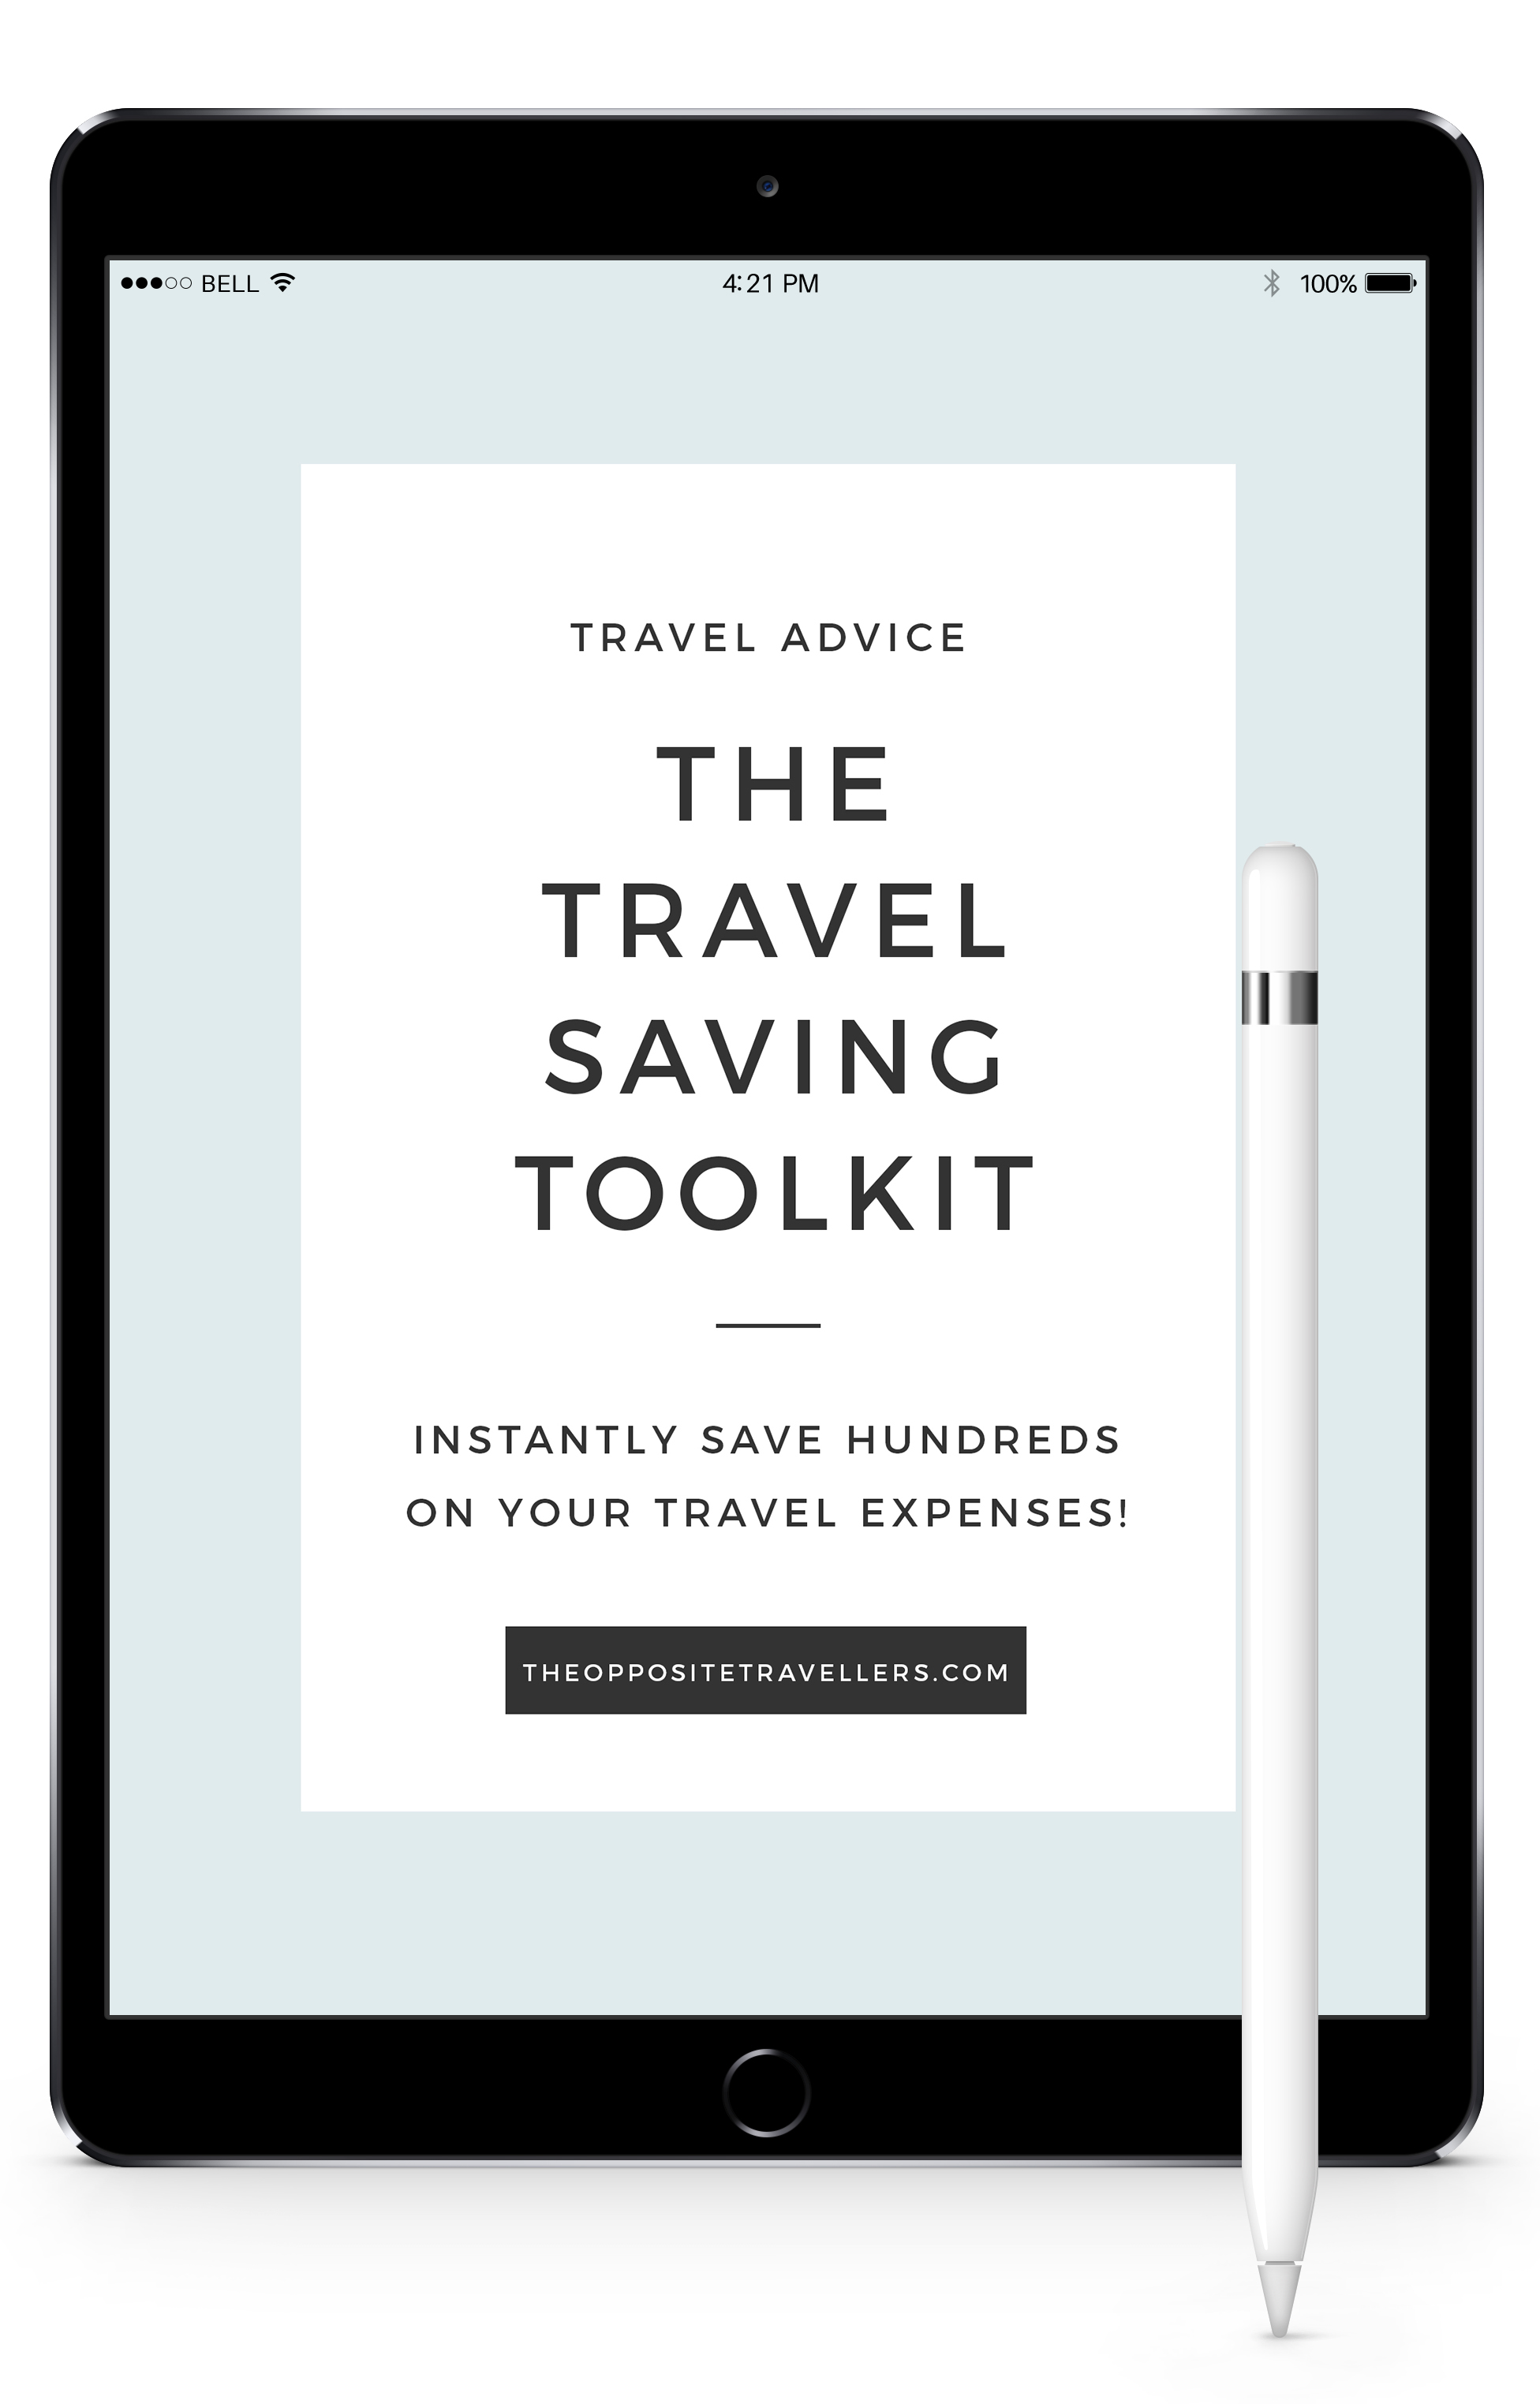 travel-savings-toolkit.jpg